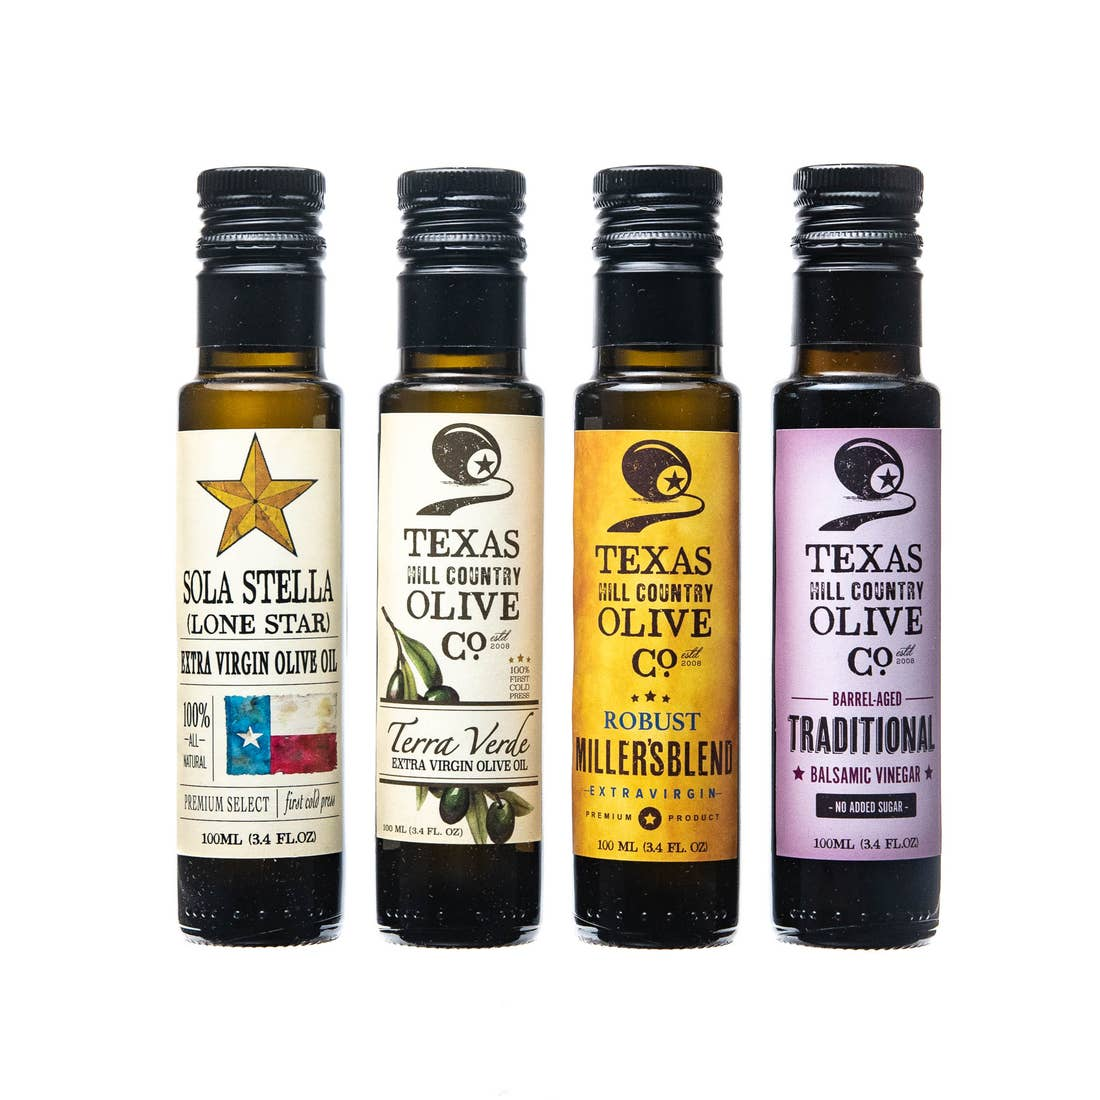 The Texas Hill Country's Award Winning Mini Set includes 3 of our most awarded extra virgin olive oils plus their most popular Traditional Balsamic Vinegar.  Sola Stella Extra Virgin Olive Oil (100m) Terra Verde Extra Virgin Olive Oil (100m) Texas Millers Blend Extra Virgin Olive Oil (100m) Traditional Balsamic Vinegar (100m) This set makes the perfect gift and is a great sampler to familiarize yourself and others with our award-winning products.